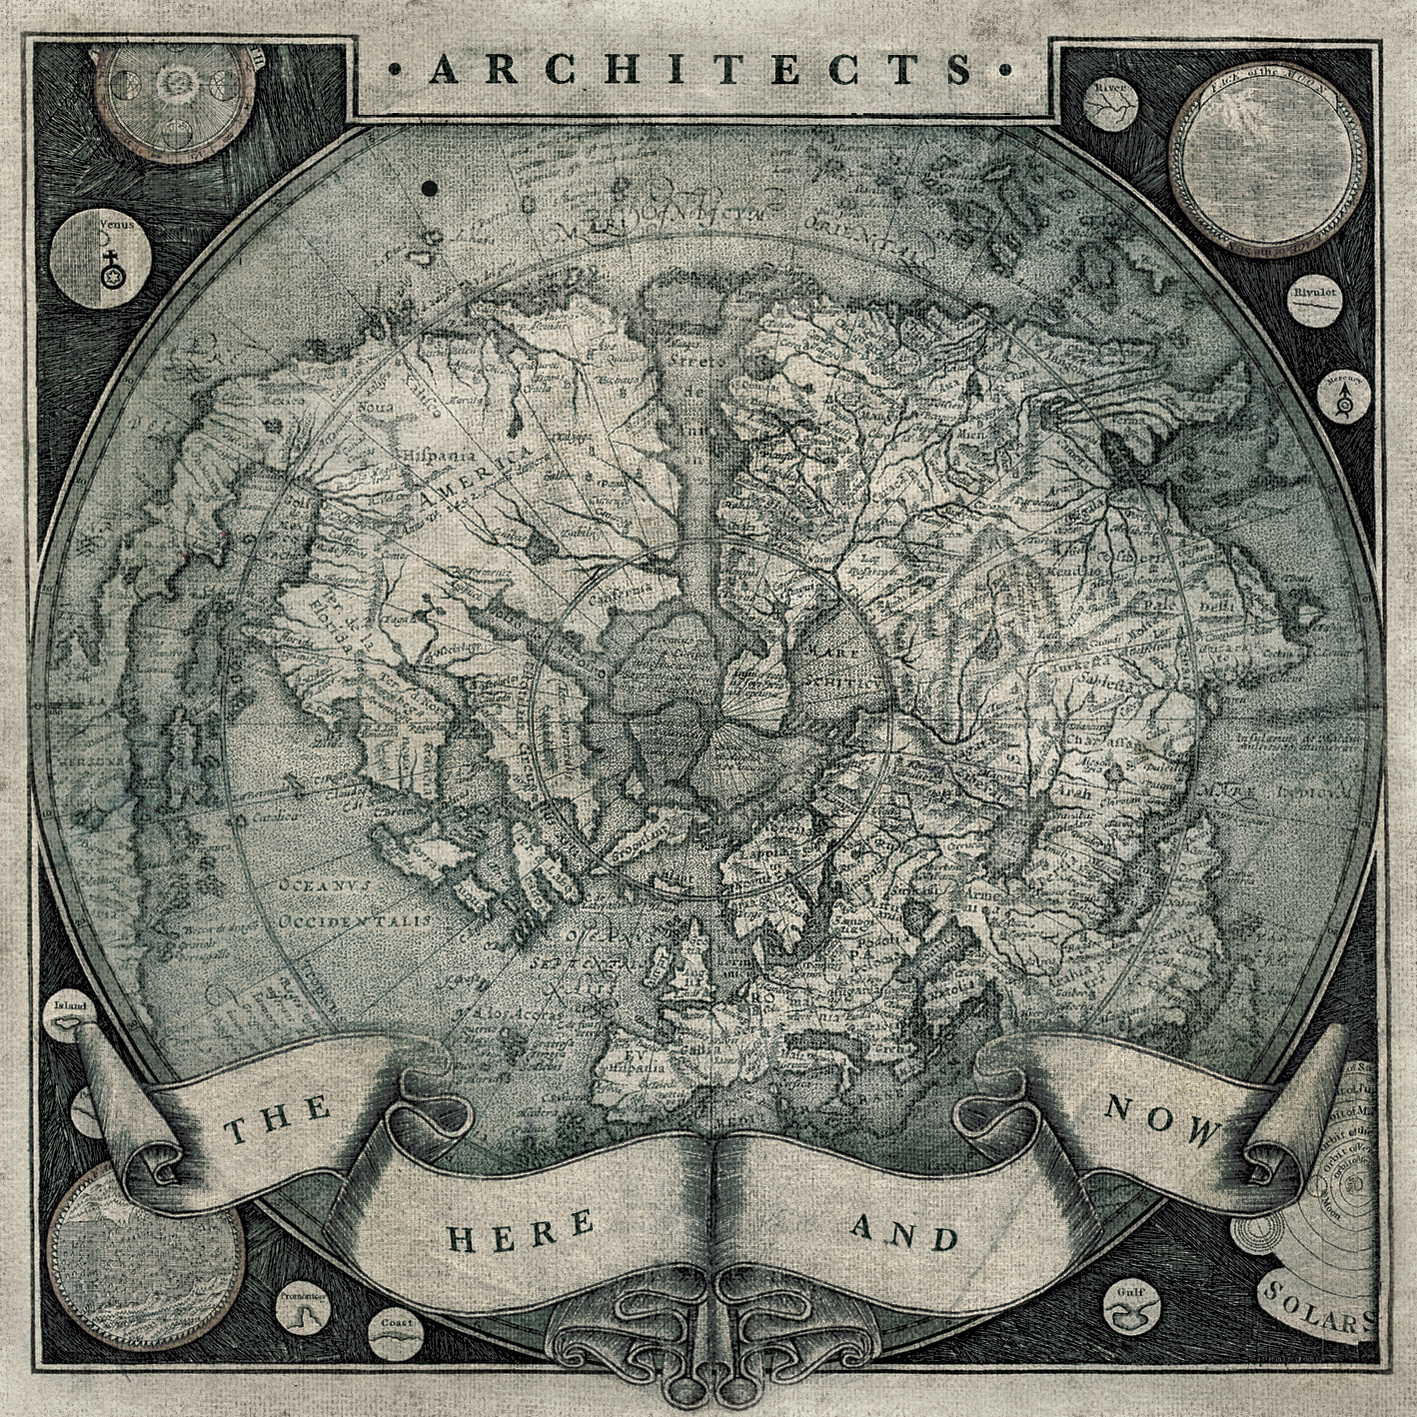 Architects – The Here and Now Review